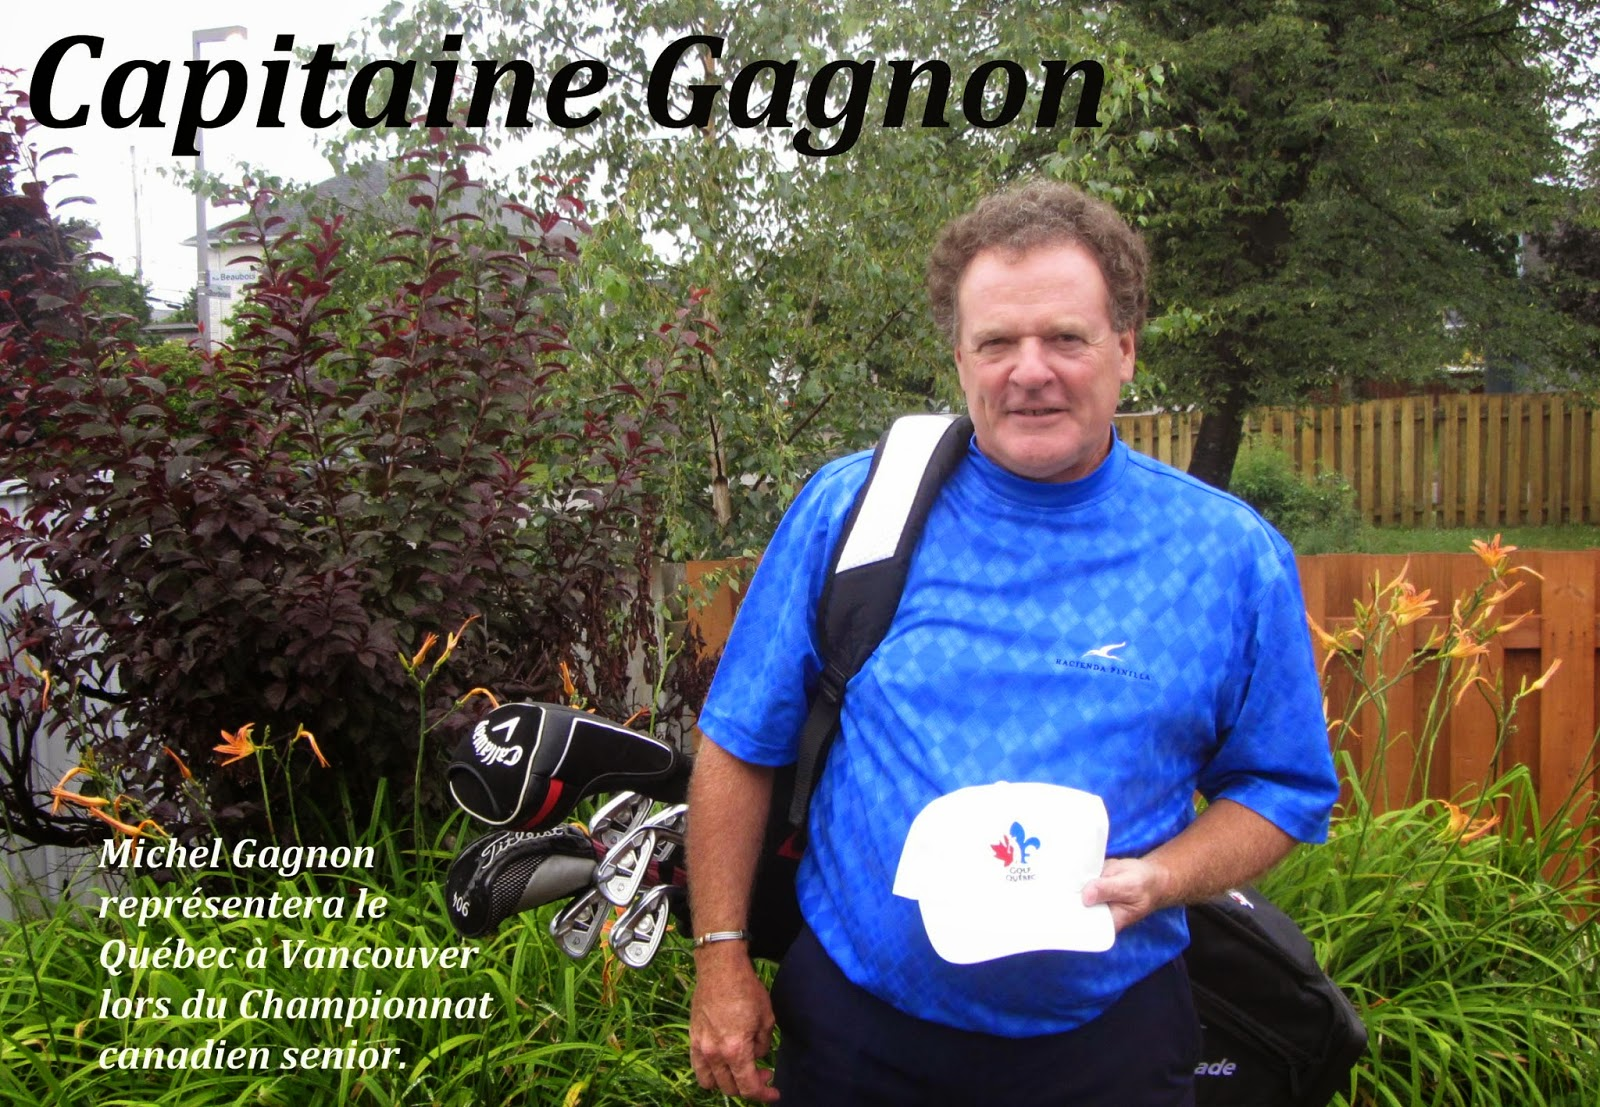 Michel Gagnon, Capitaine Gagnon